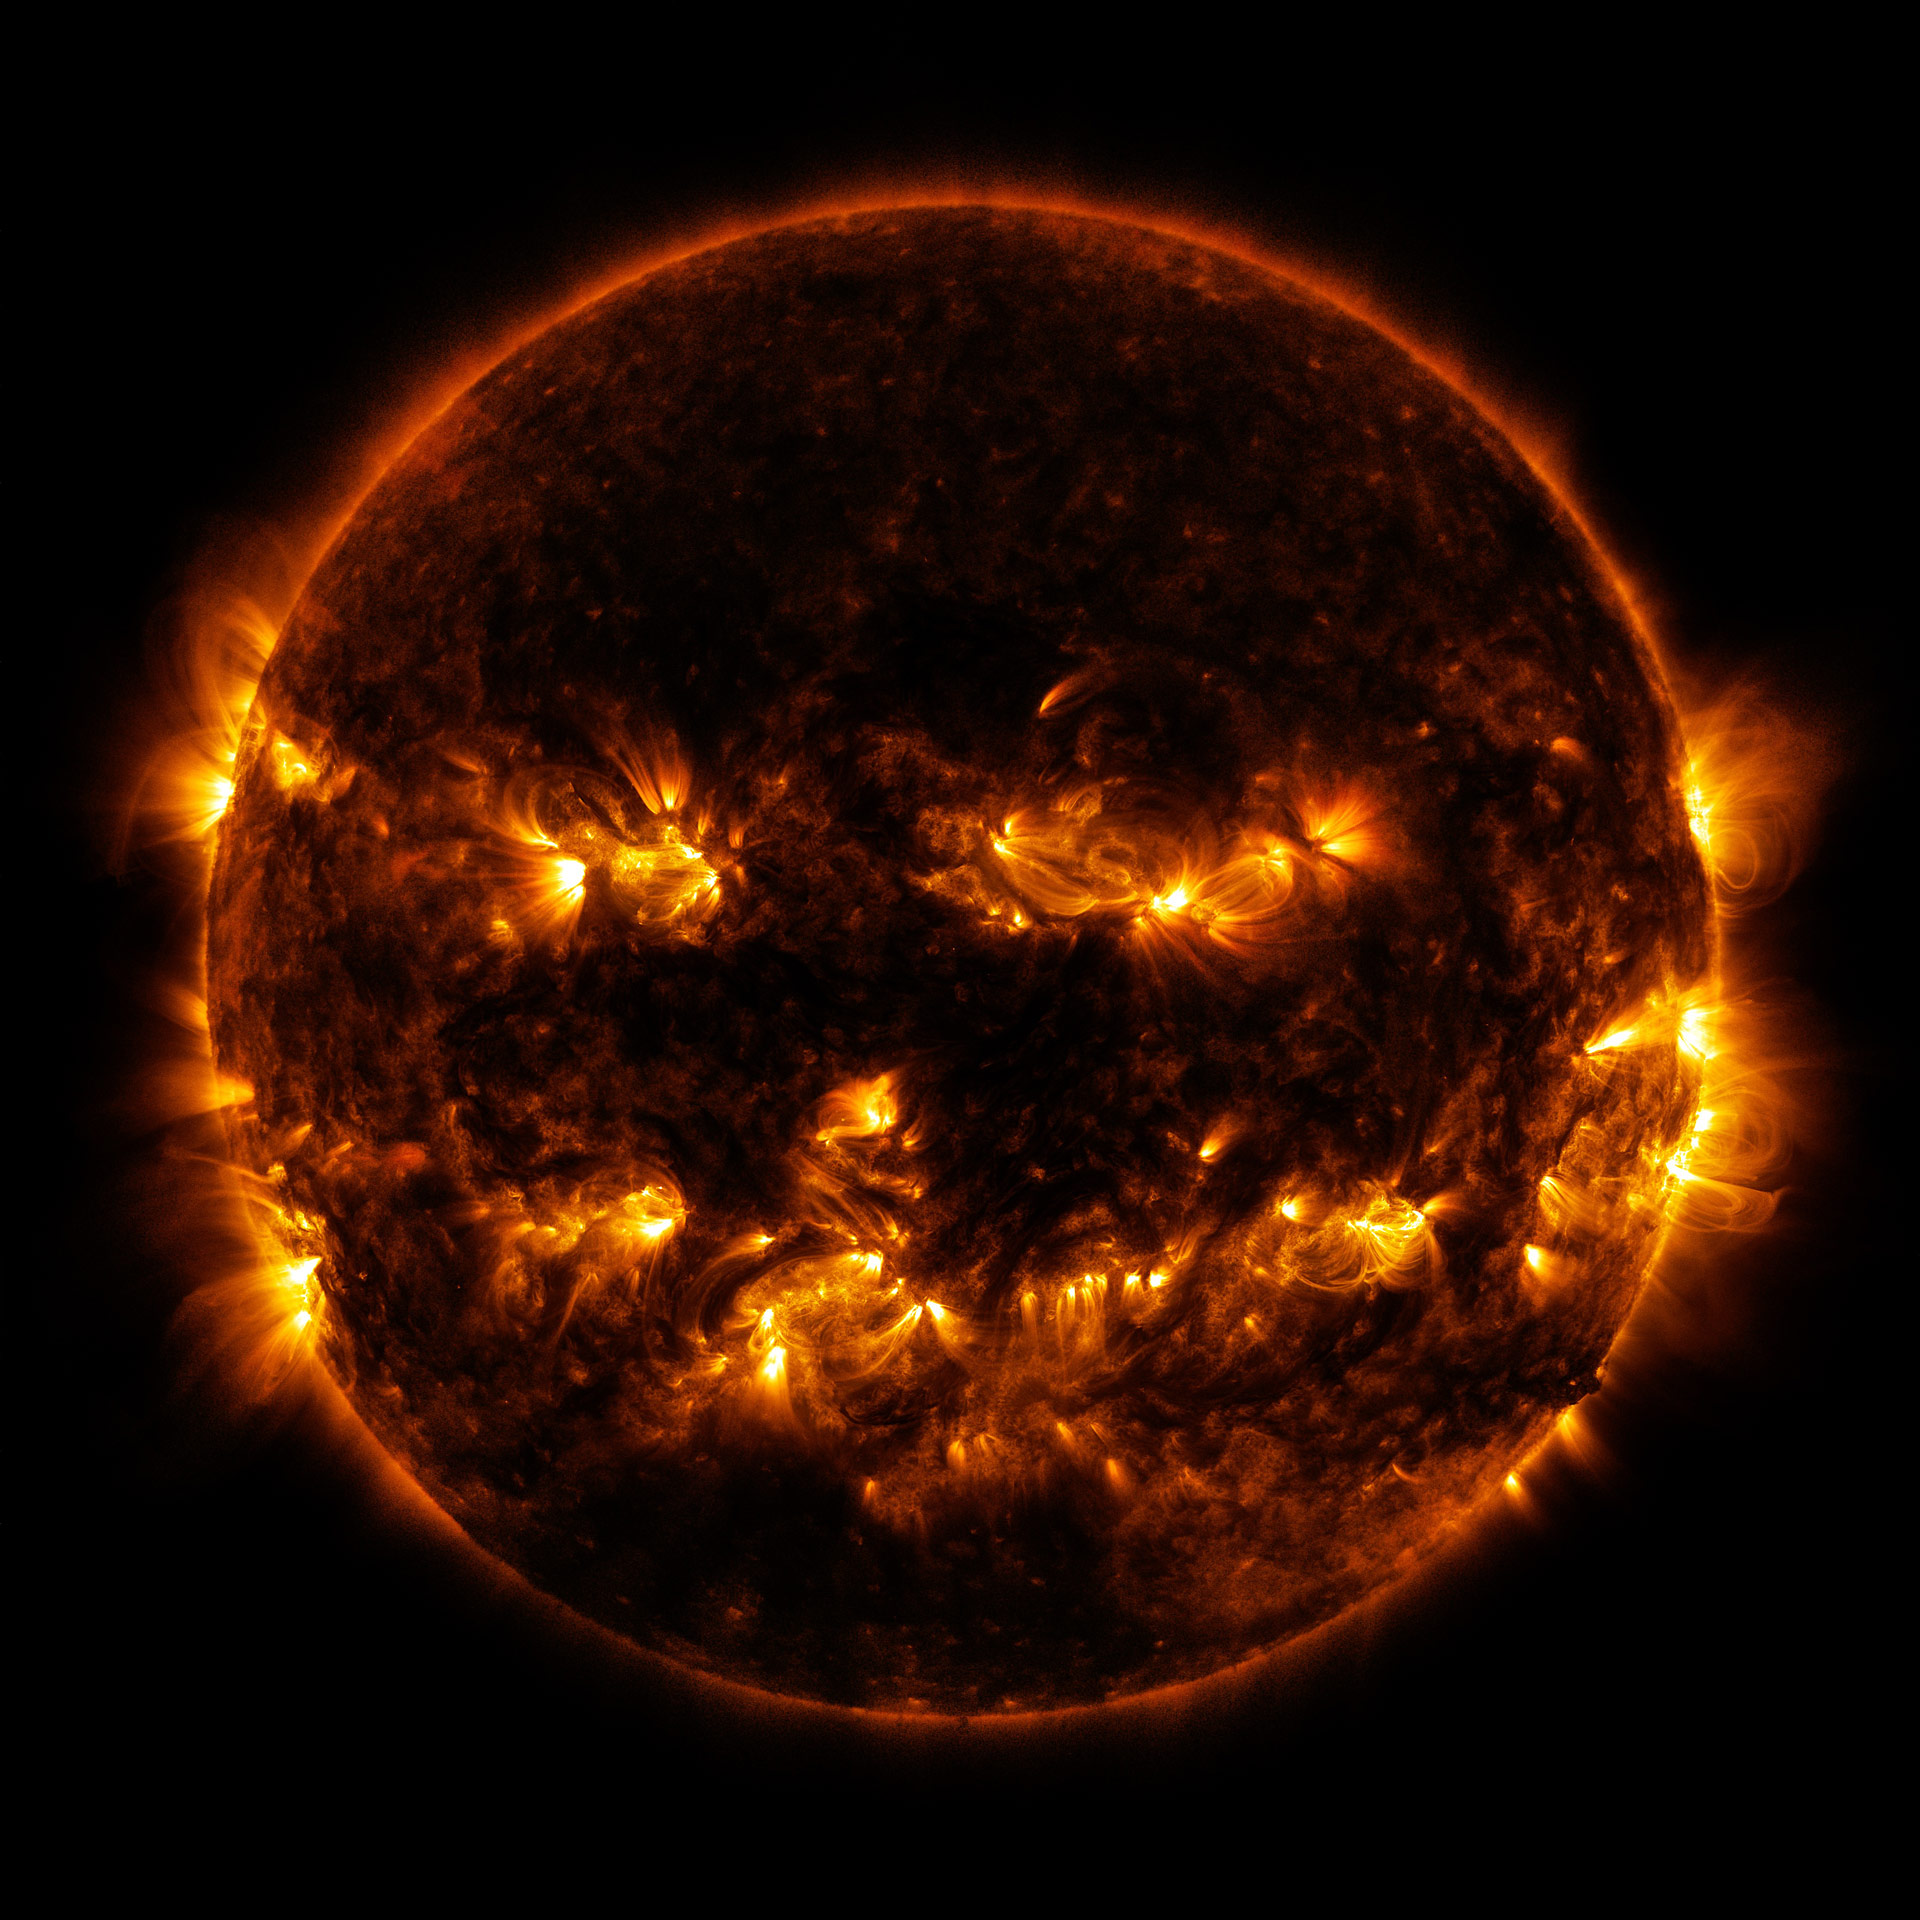 sdo solar dynamics observatory - photo #18